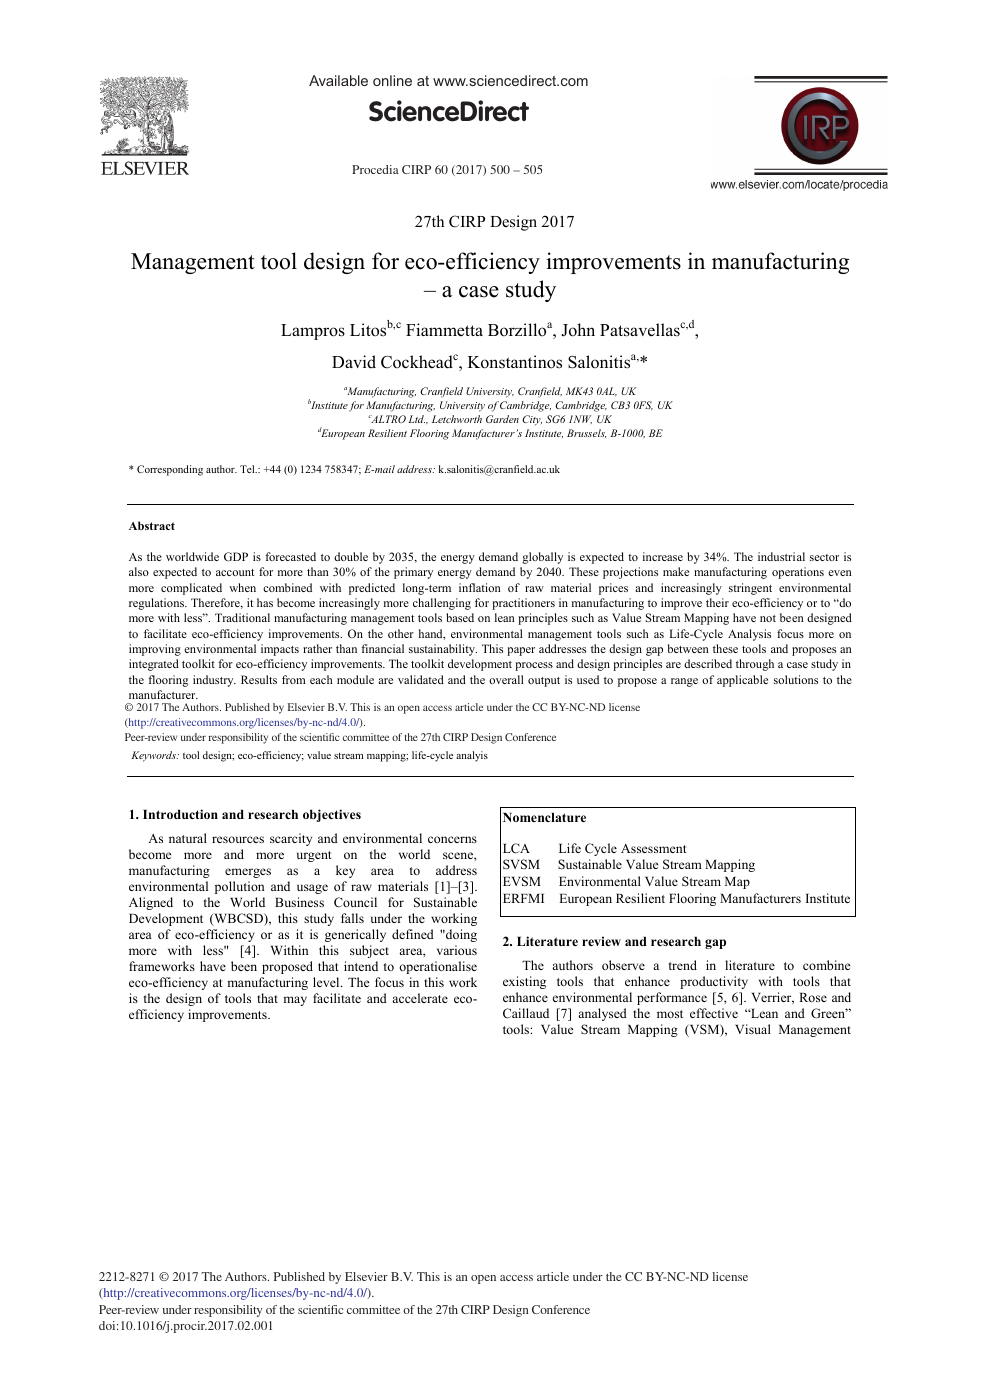 Management Tool Design for Eco-efficiency Improvements in